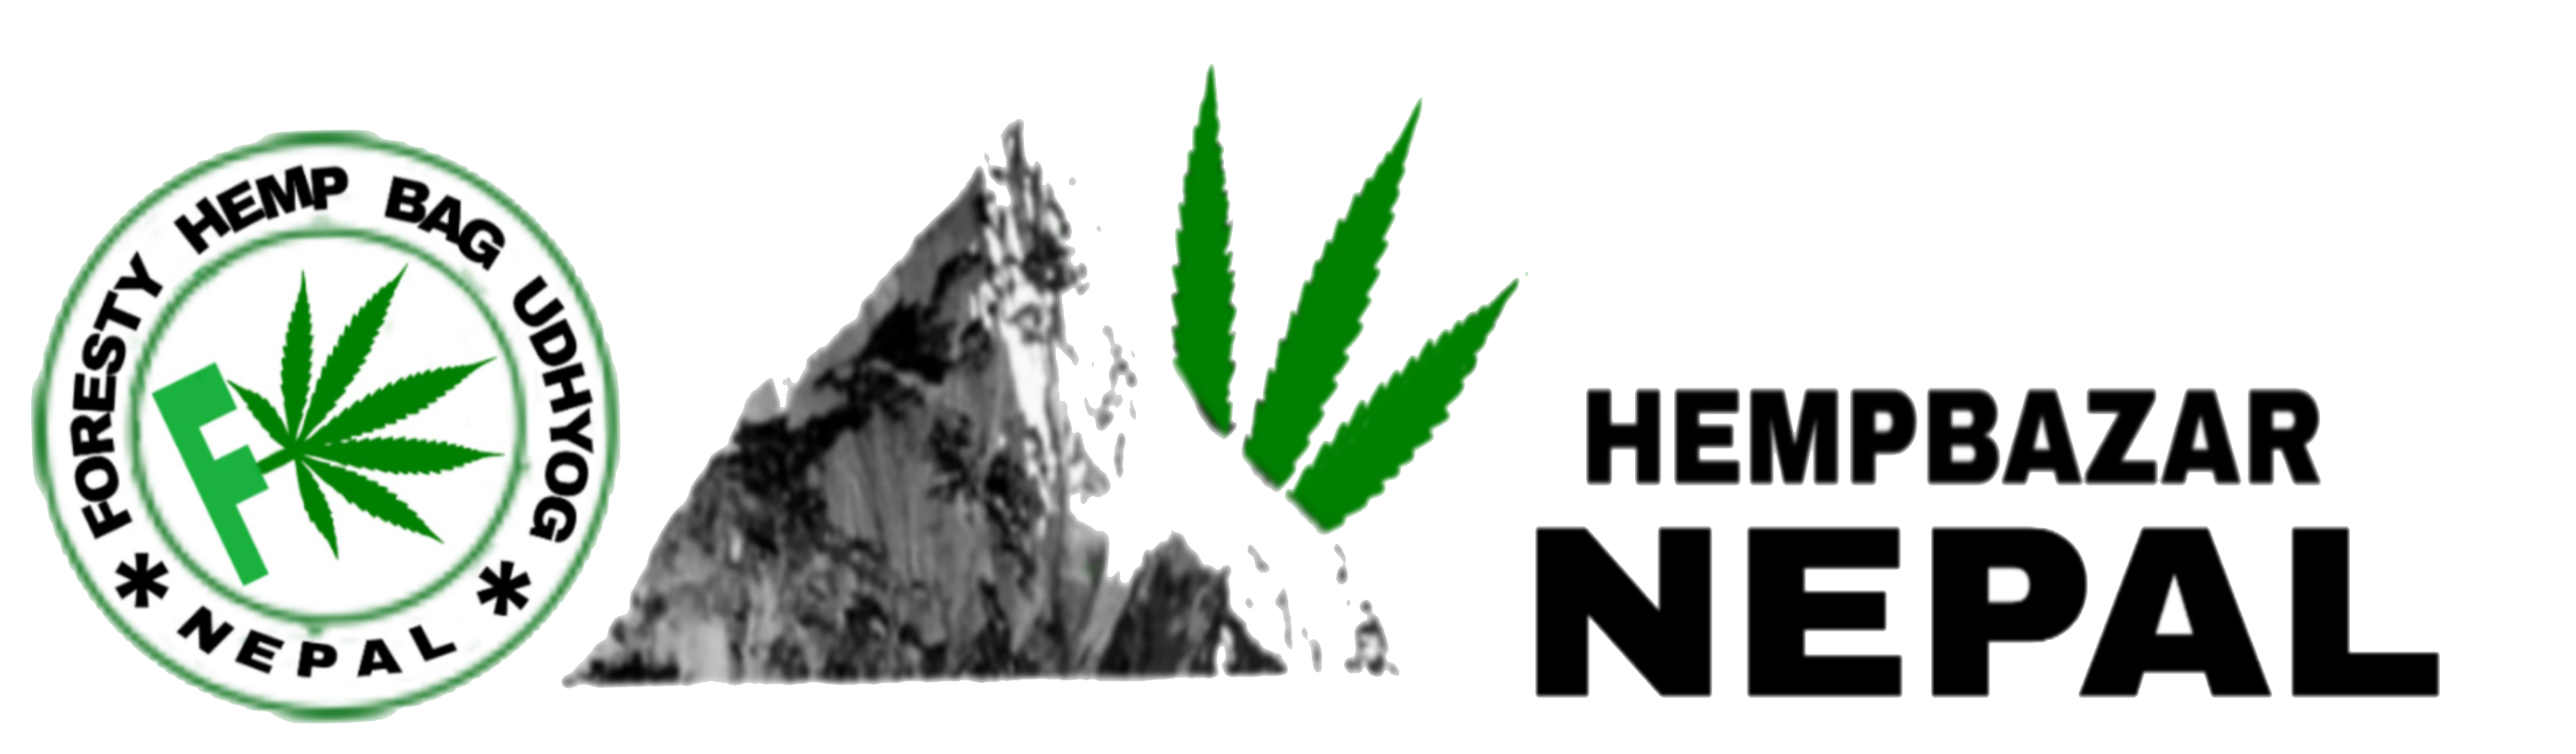 Hemp Bazar Nepal - Marketplace for B2B and B2C hemp products - a Foresty Hemp Bag Udhyog and CANAVEDA Co-operation.